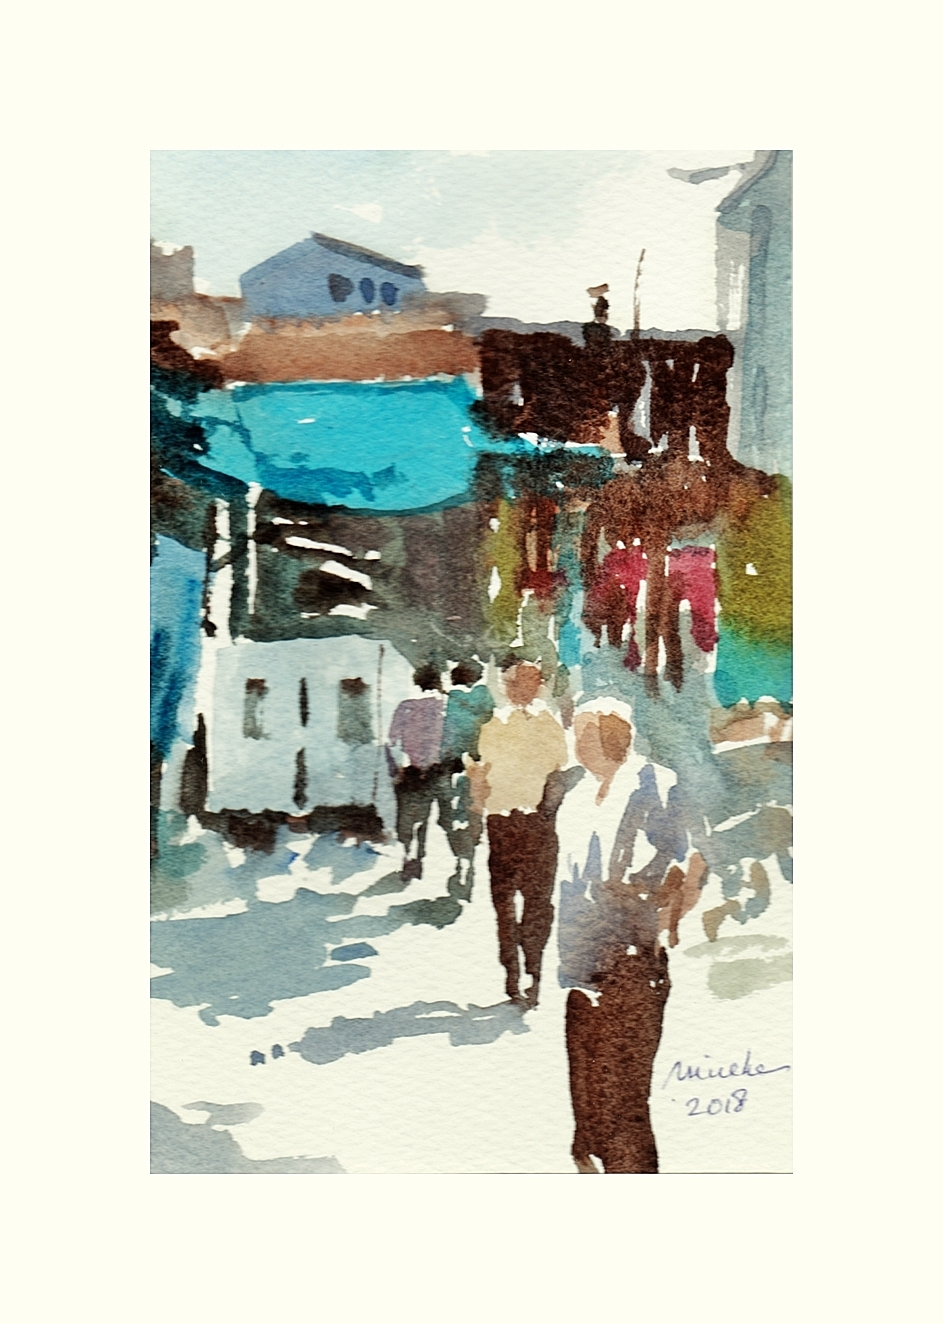 2018-100618-art-minekereinders-small-watercolor-market